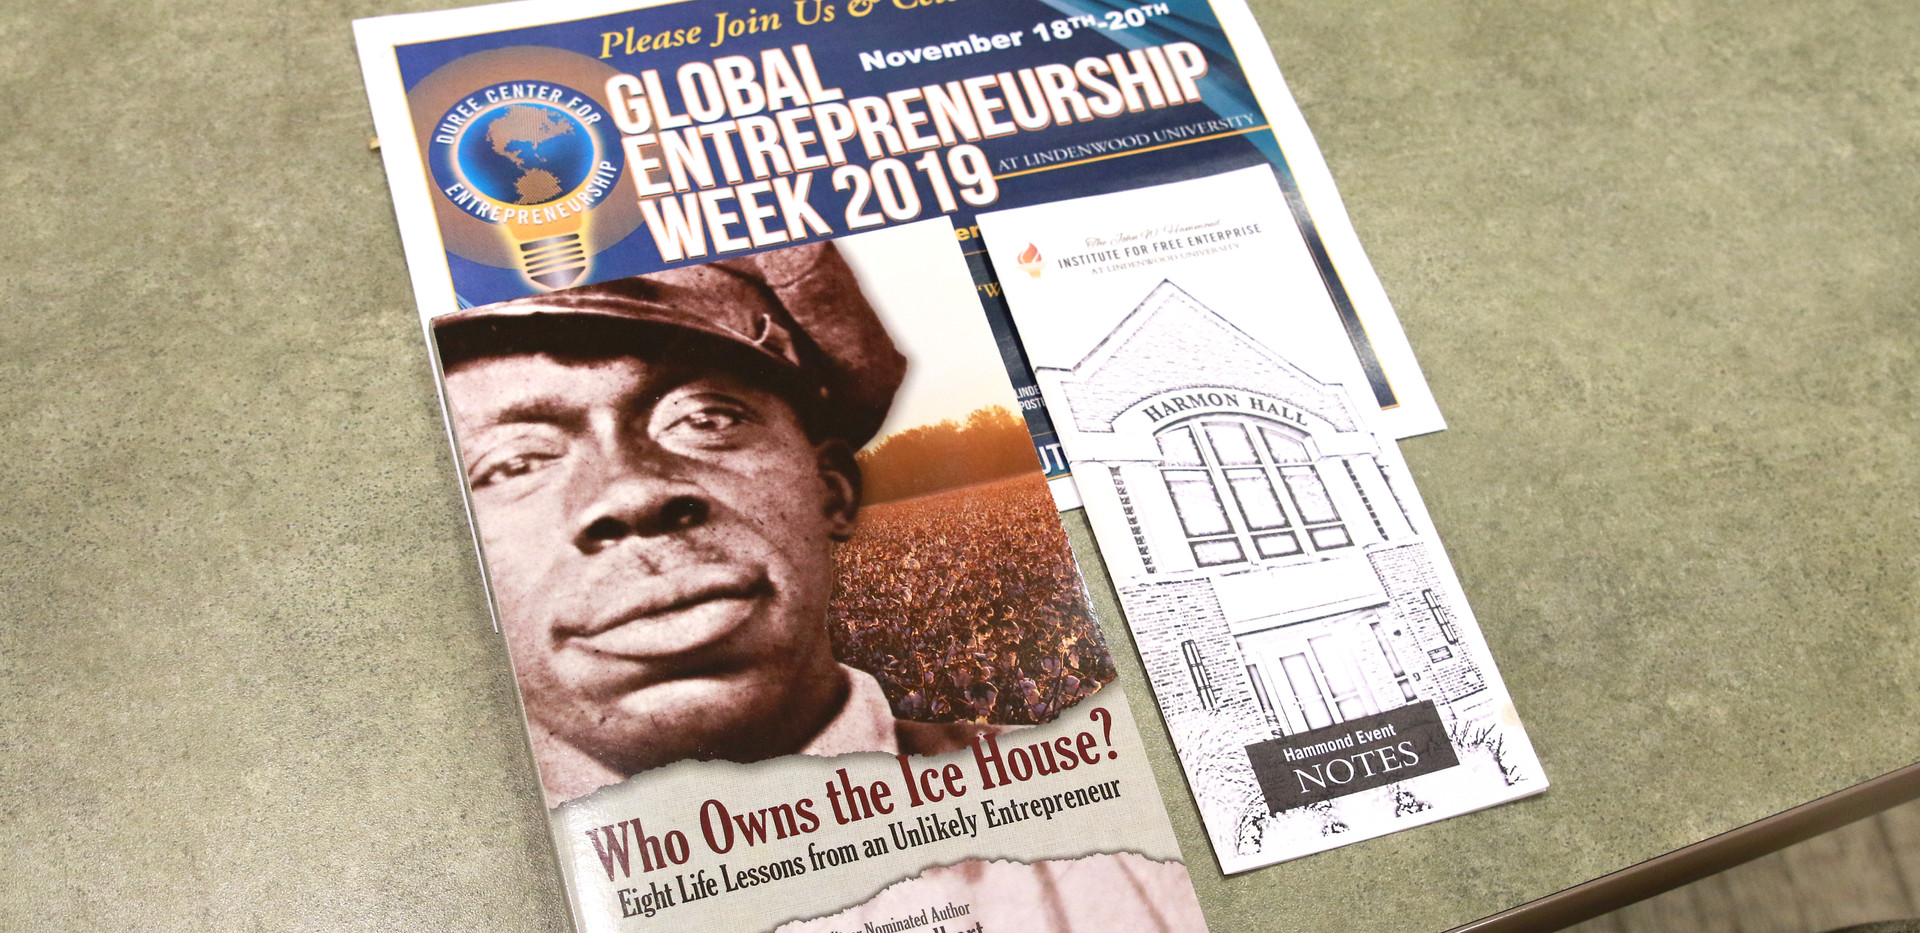 Global Entrepreneurship Week 2019